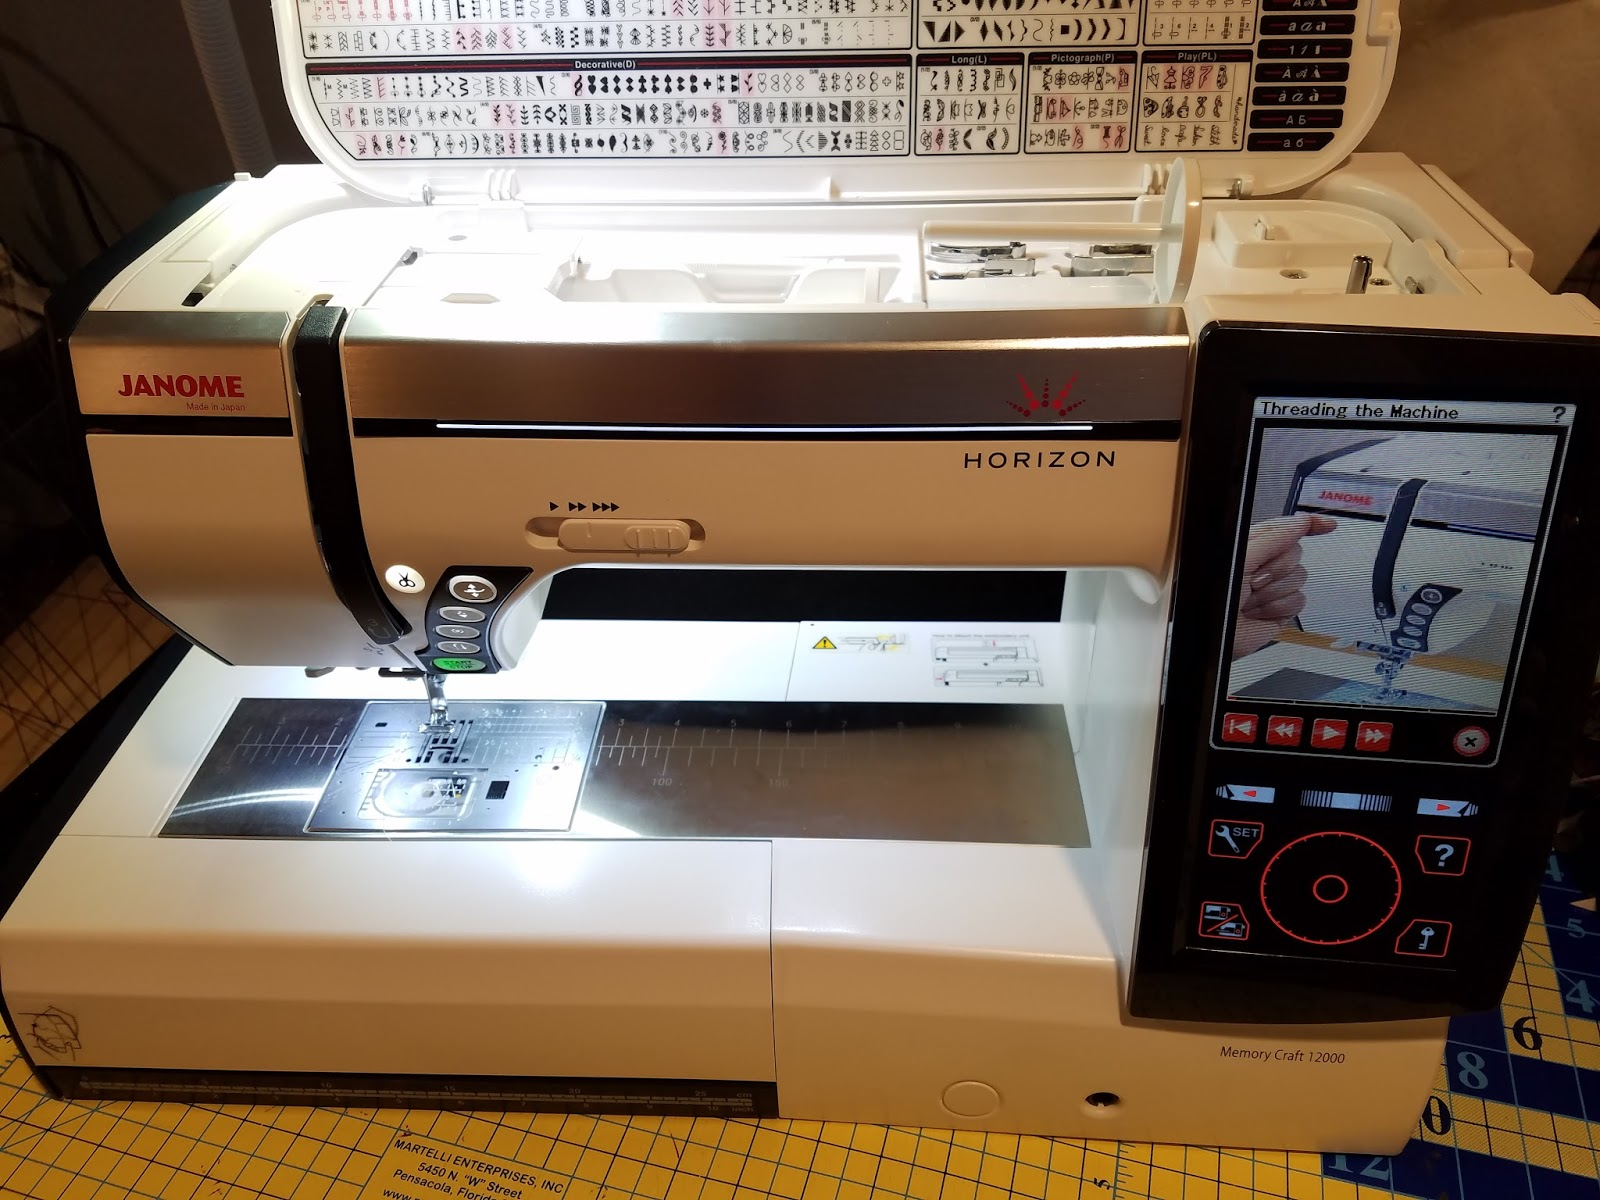 Janome memory craft 12000 - If You Would Like To Purchase This Machine Please Send A Private Email To